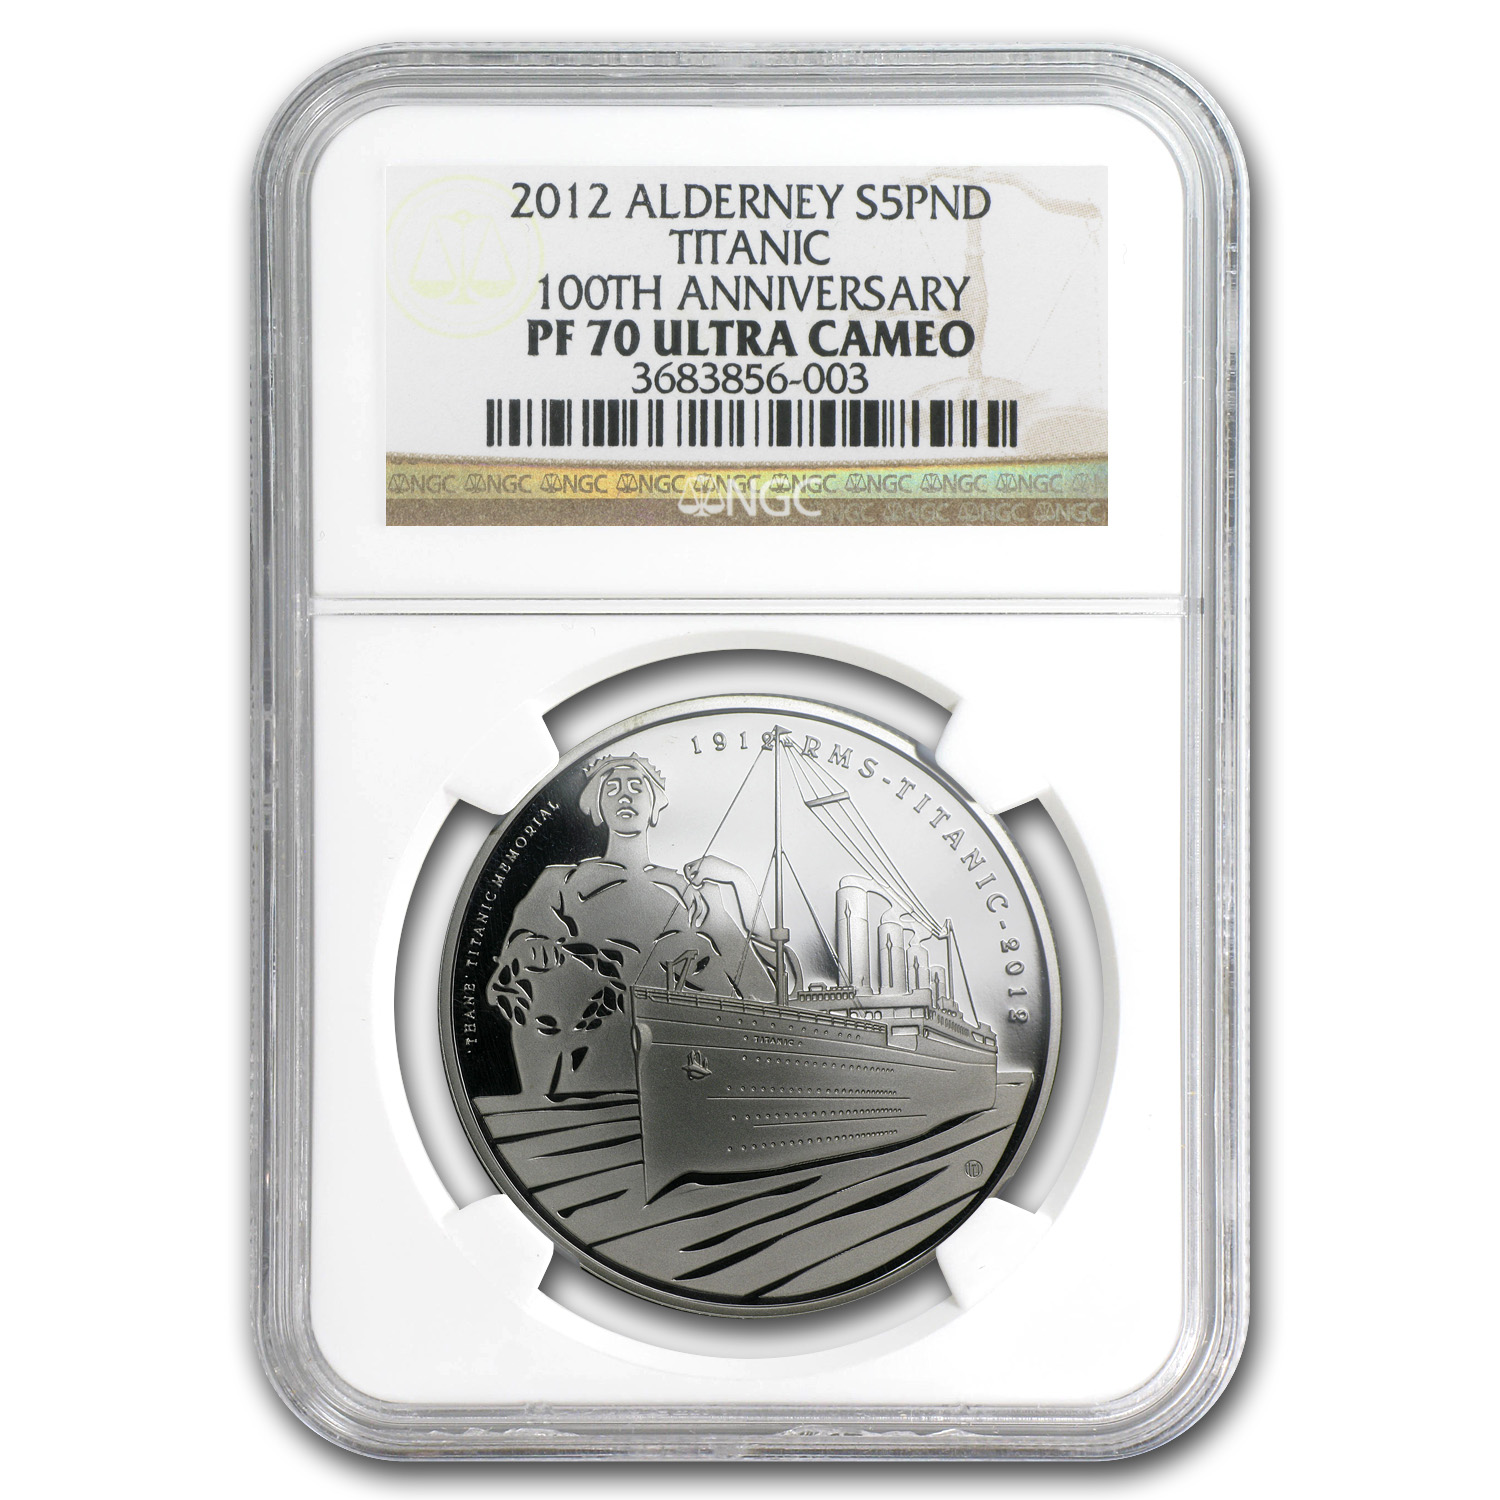 2012 Alderney Silver 10 Pounds 100th Anniv Titanic PF-70 NGC